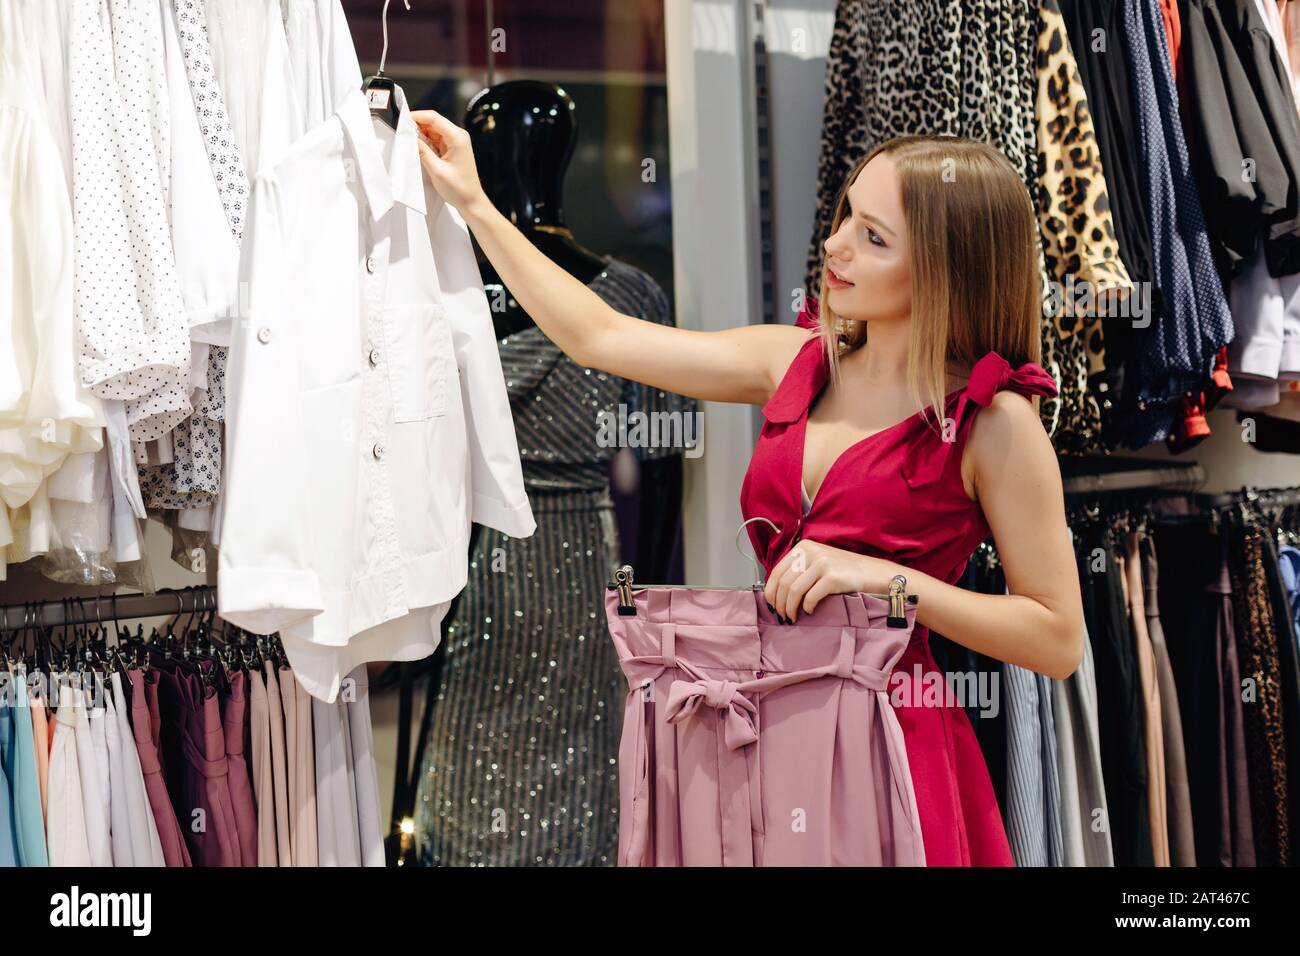 A Young Beautiful Girl In A Women S Clothing Store Chooses A White Blouse And Pink Skirt From A New Collection Stock Photo Alamy